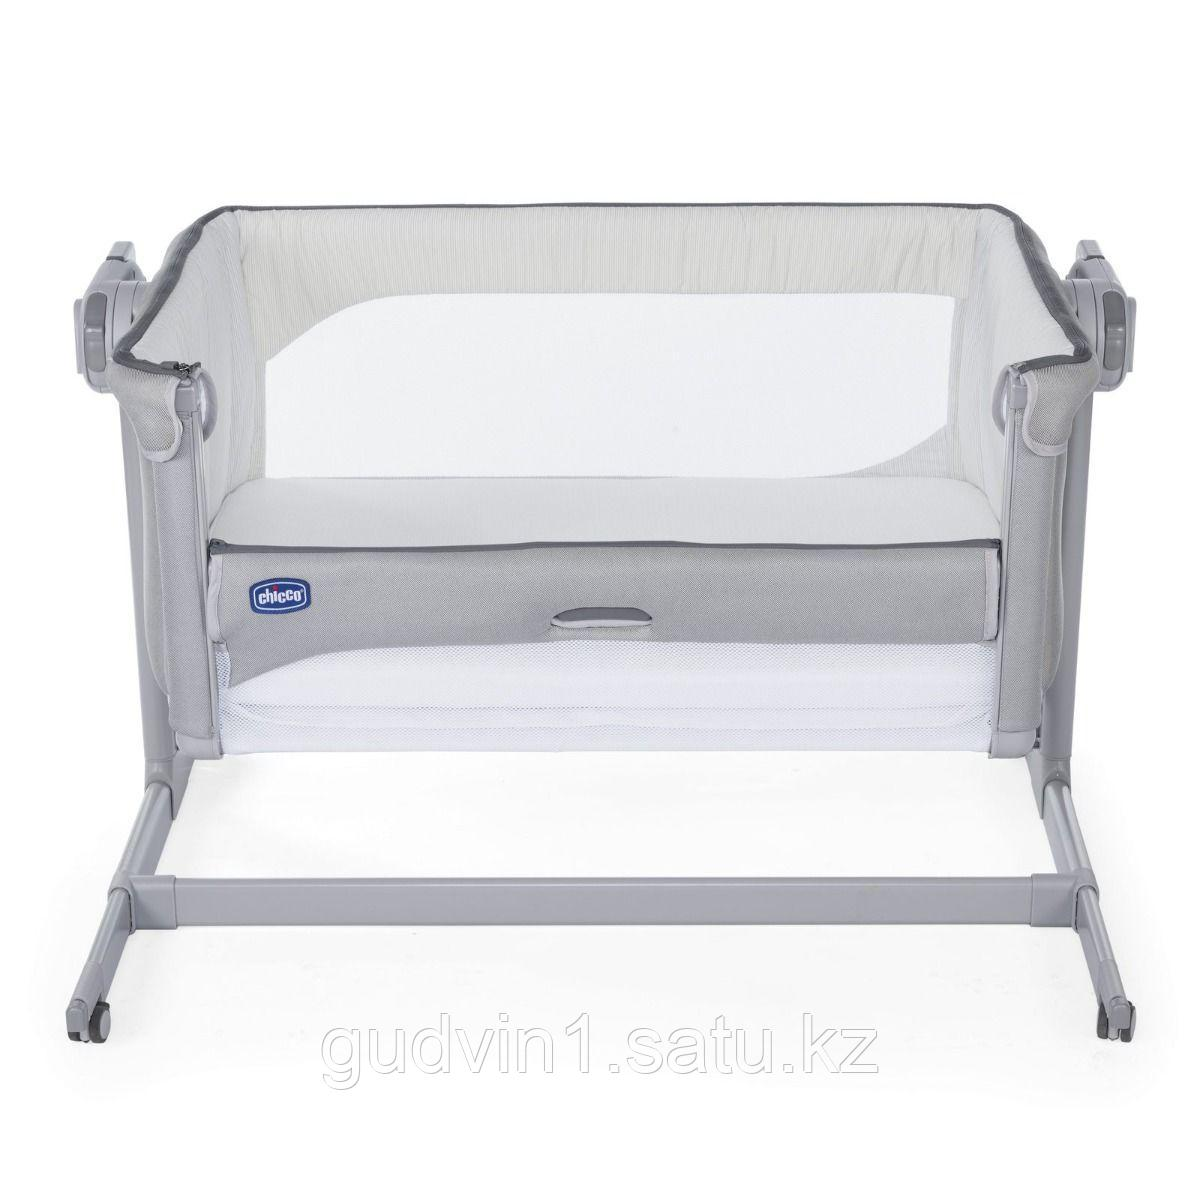 CHICCO: КРОВАТКА-МАНЕЖ NEXT 2 ME Magic Cool Grey 0м+ 1098721